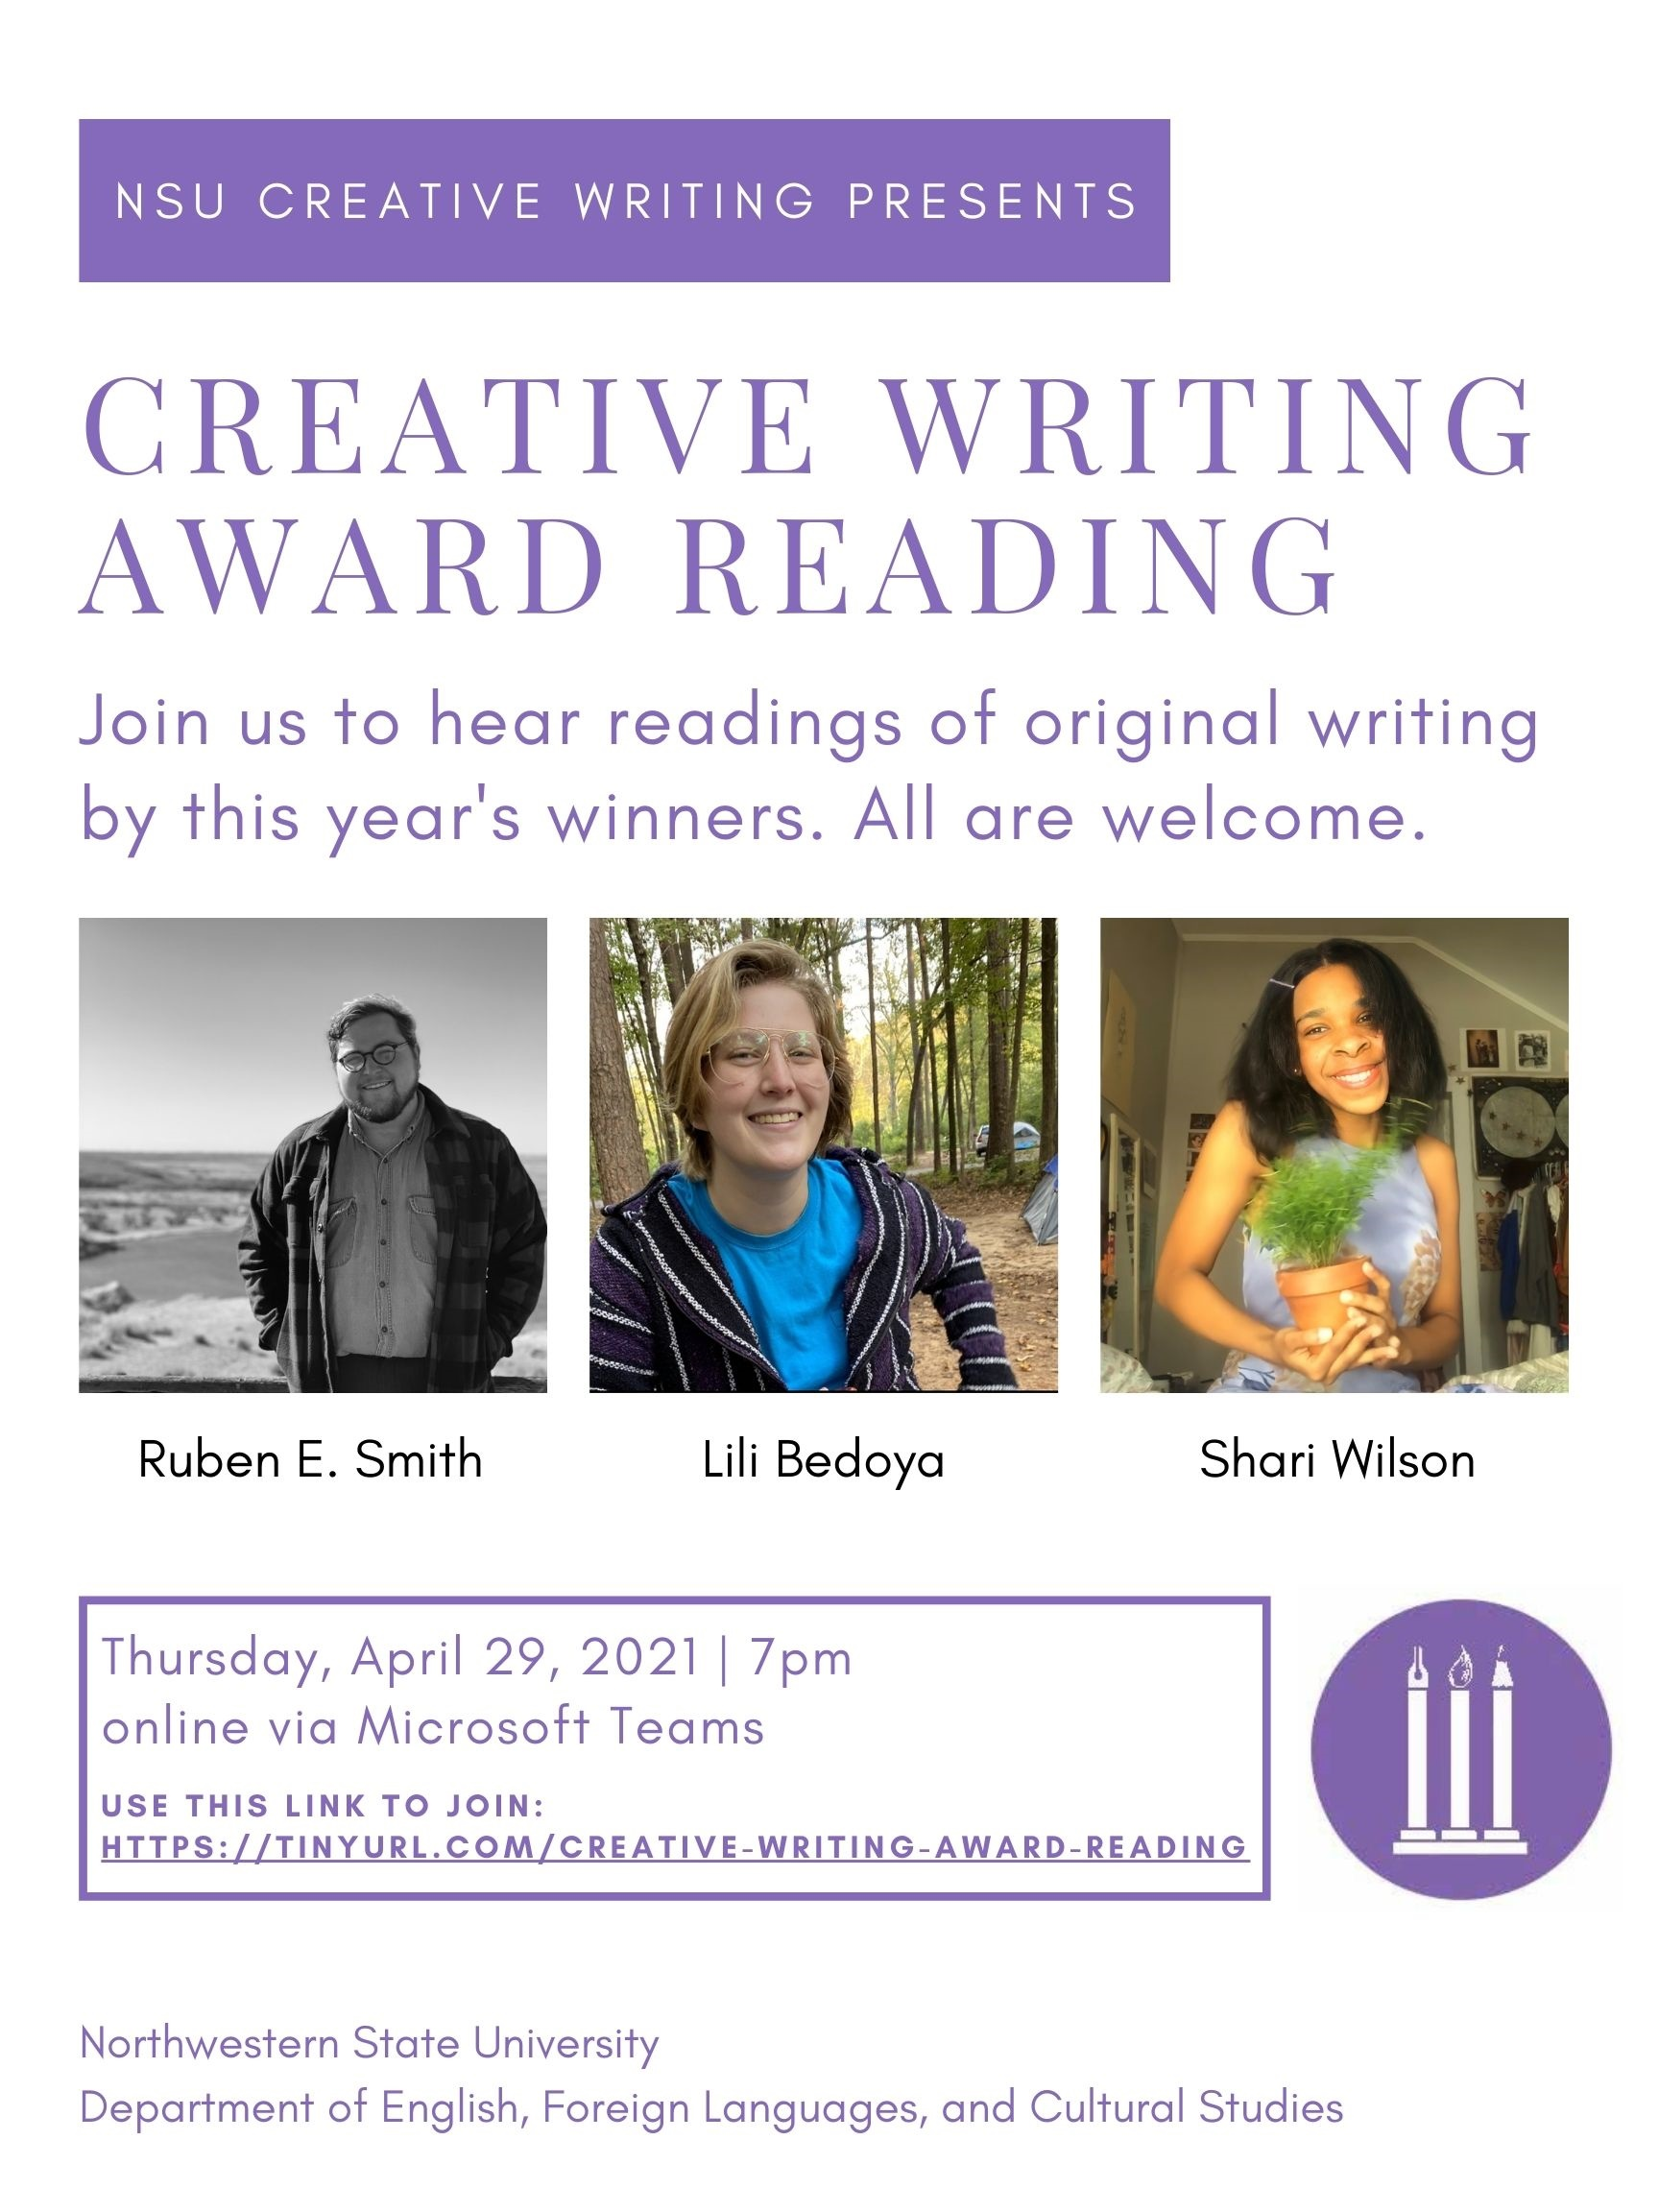 info about reading/awards ceremony April 29